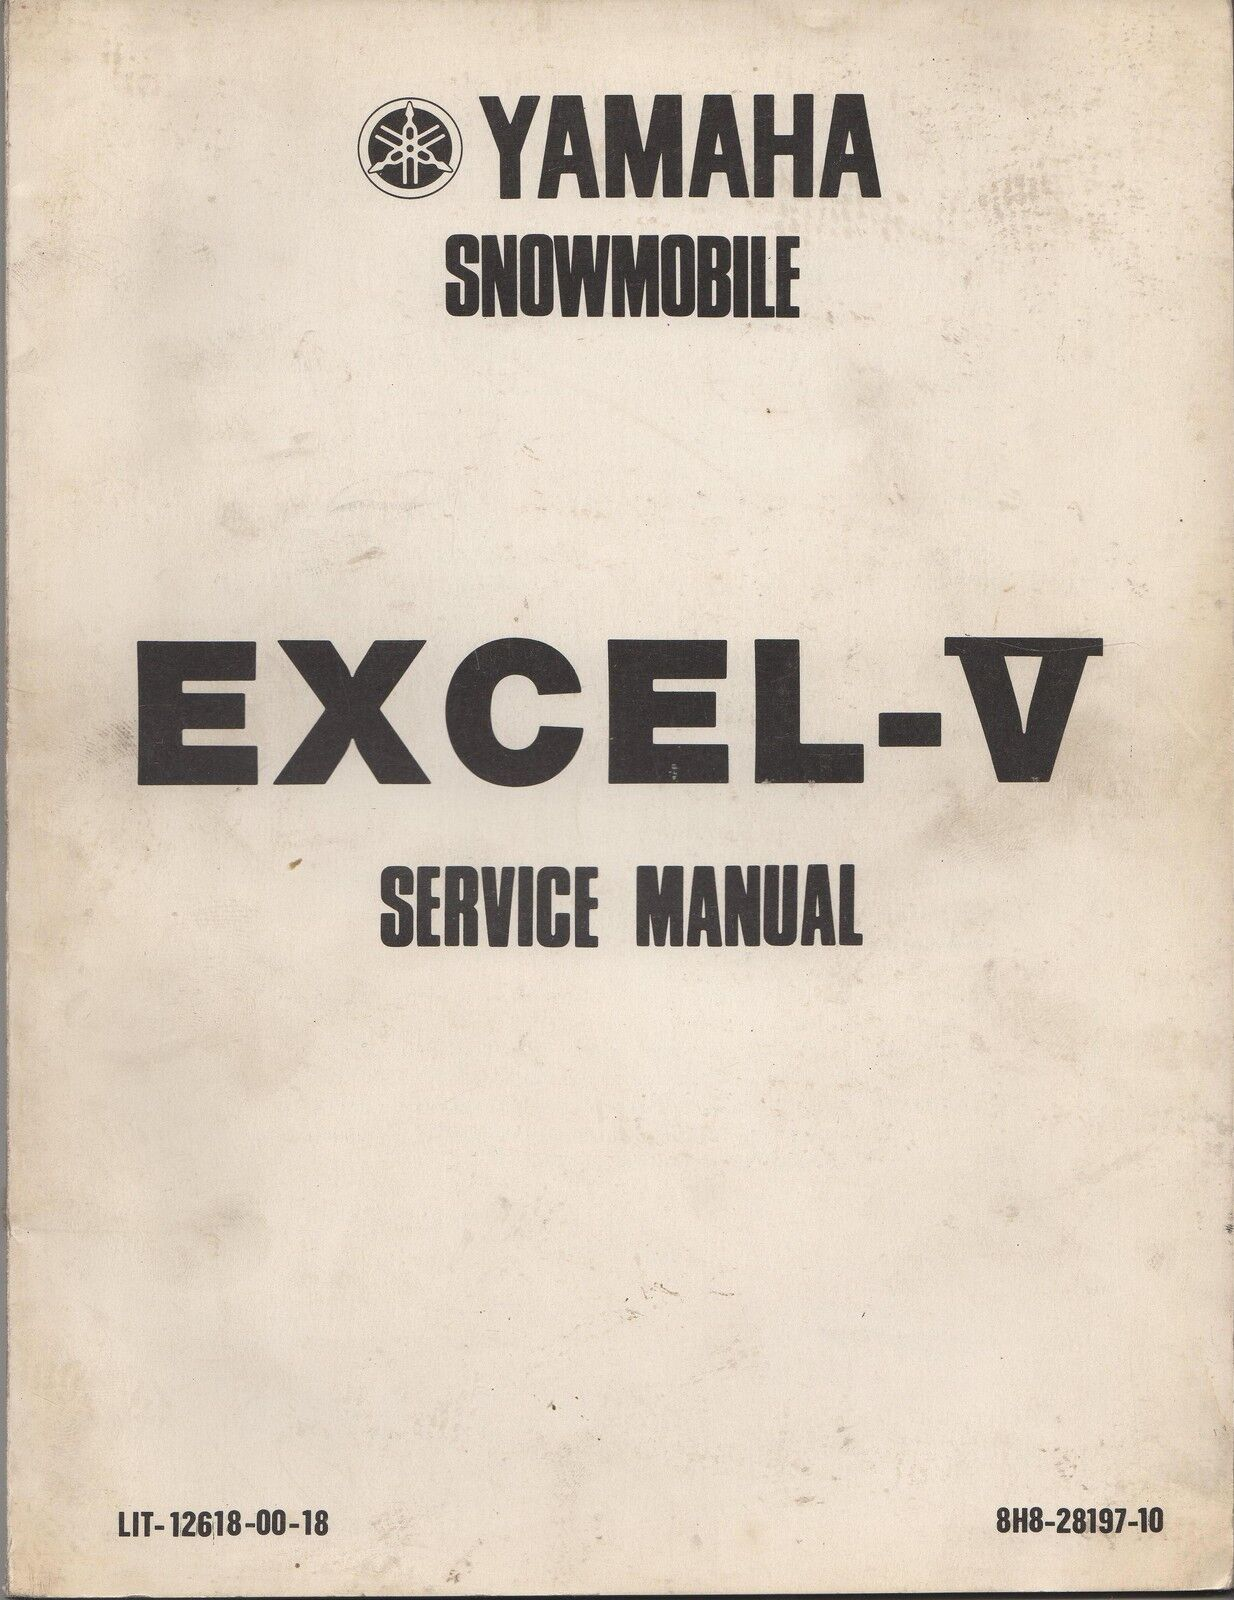 1979 YAMAHA SNOWMOBILE EXCEL-V SERVICE  MANUAL  new style